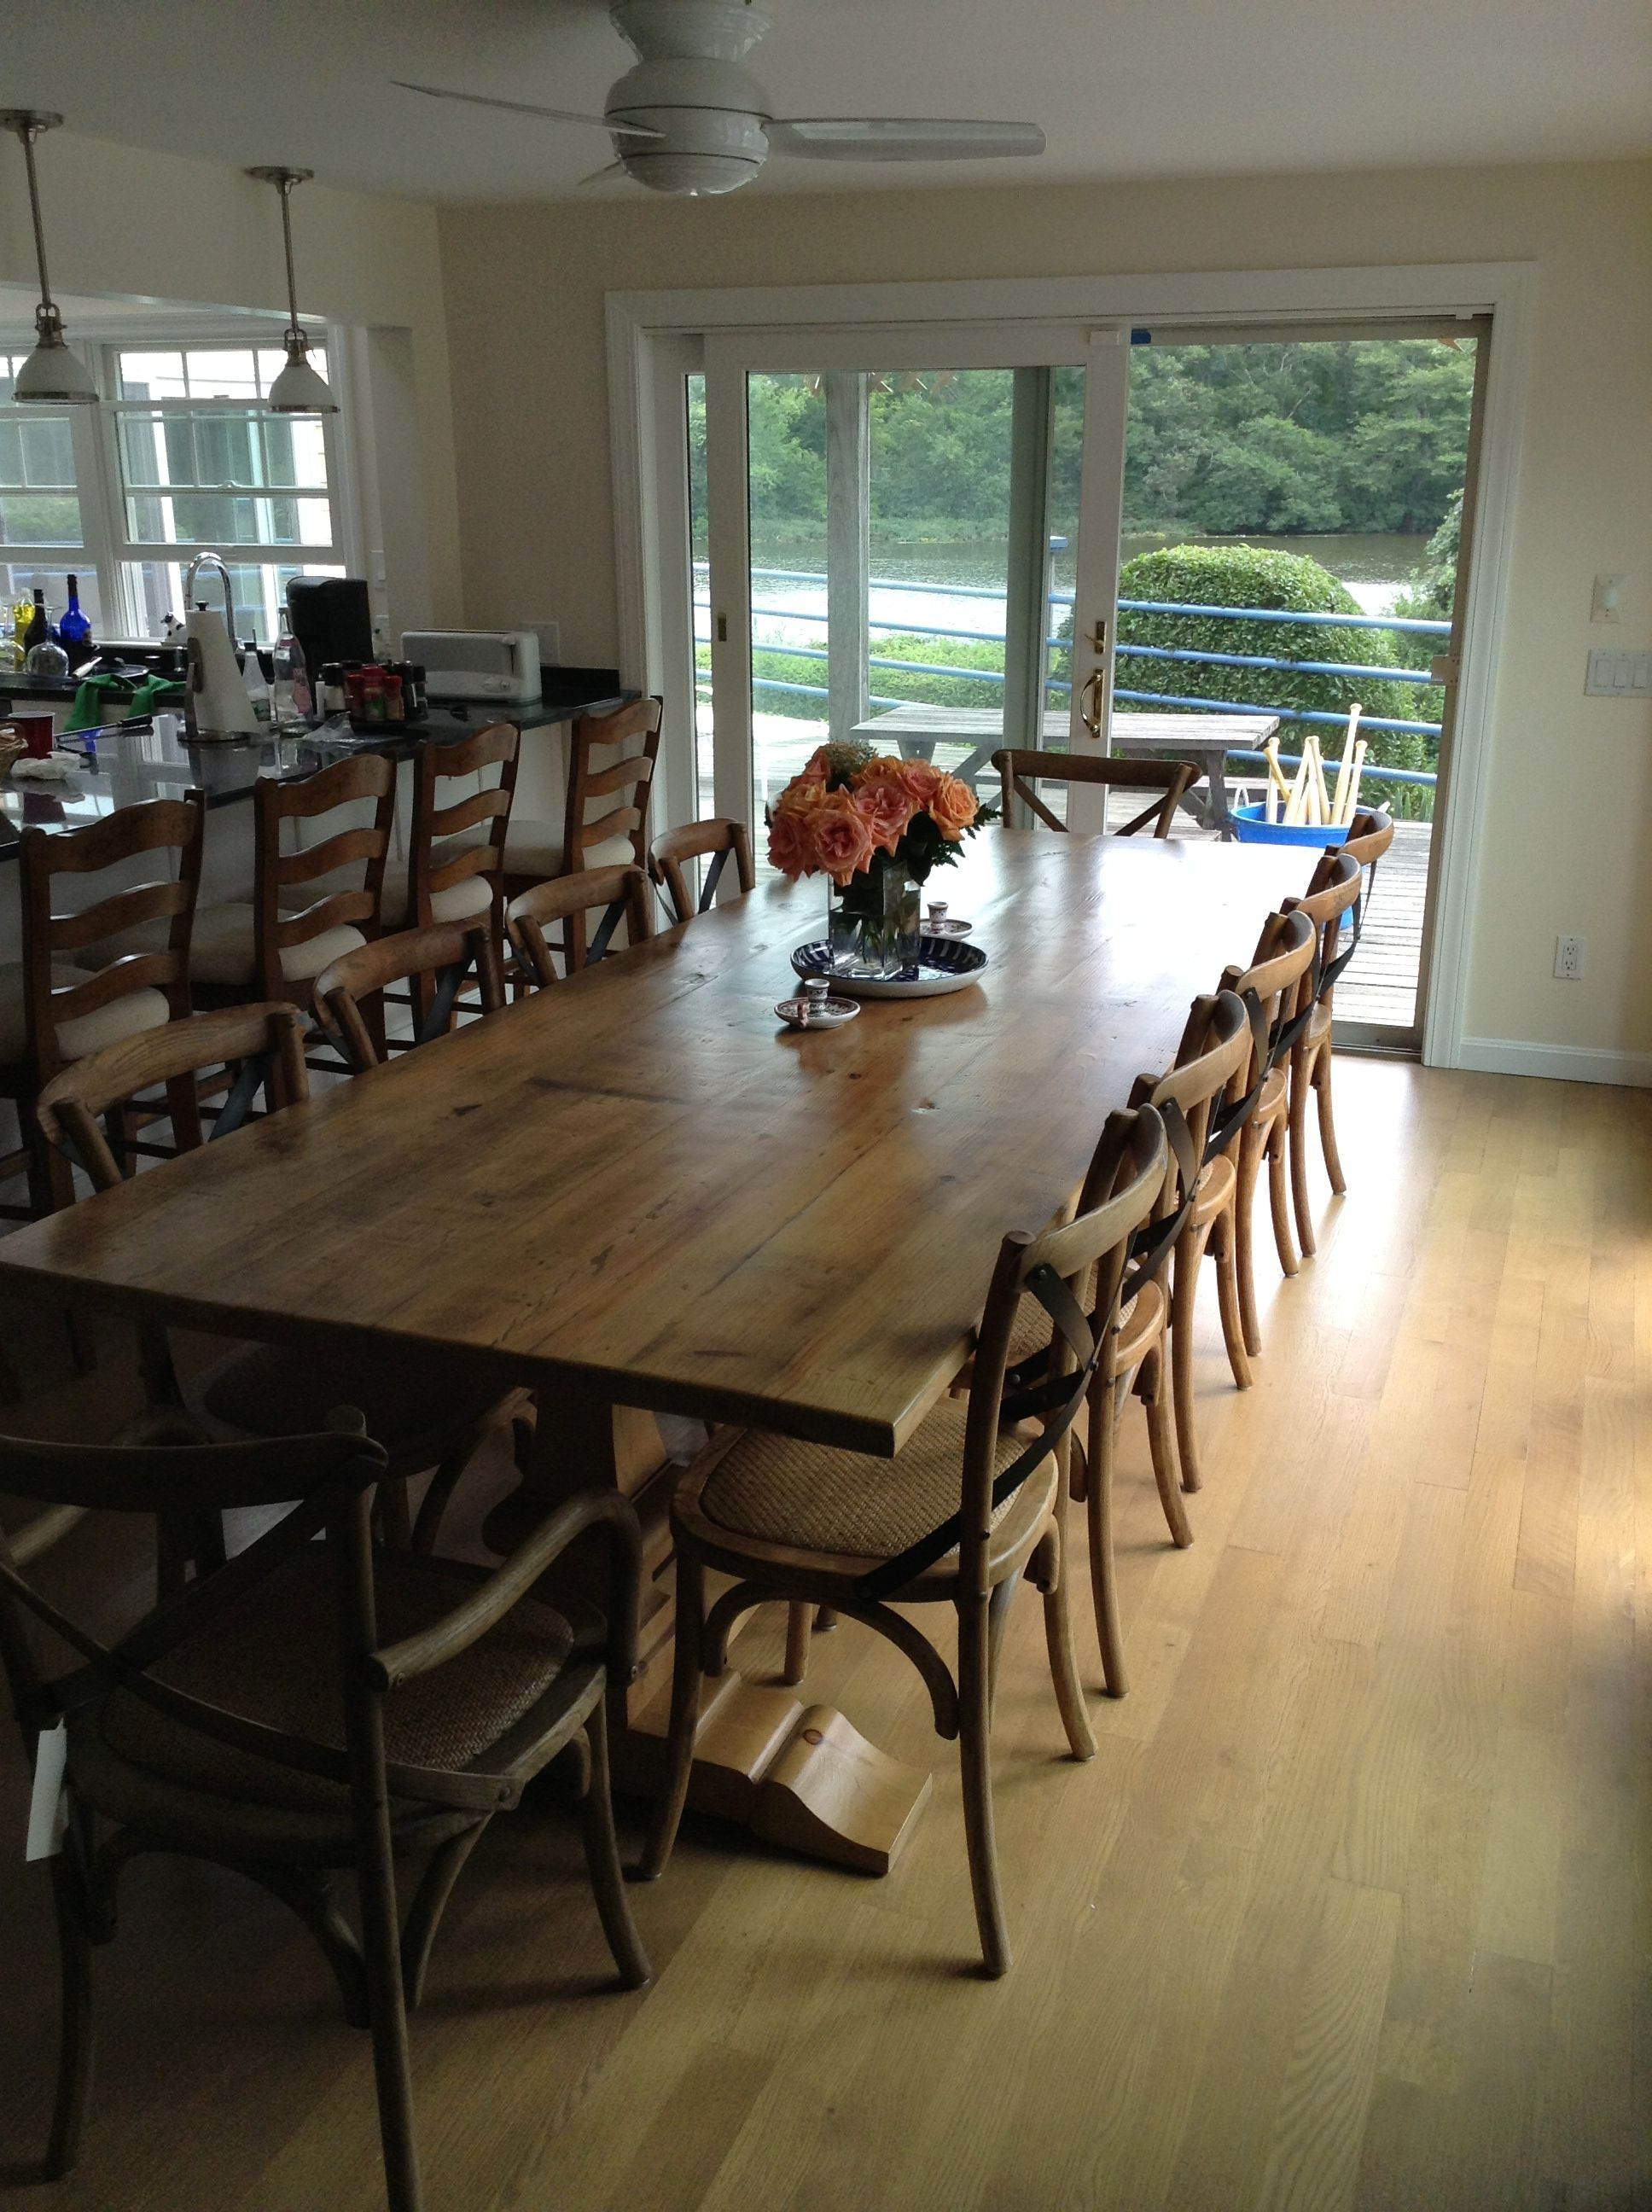 12 Ft Barn Wood Farm Table In New England Home Barnwood Furniture Furniture Reclaimed Barn Wood